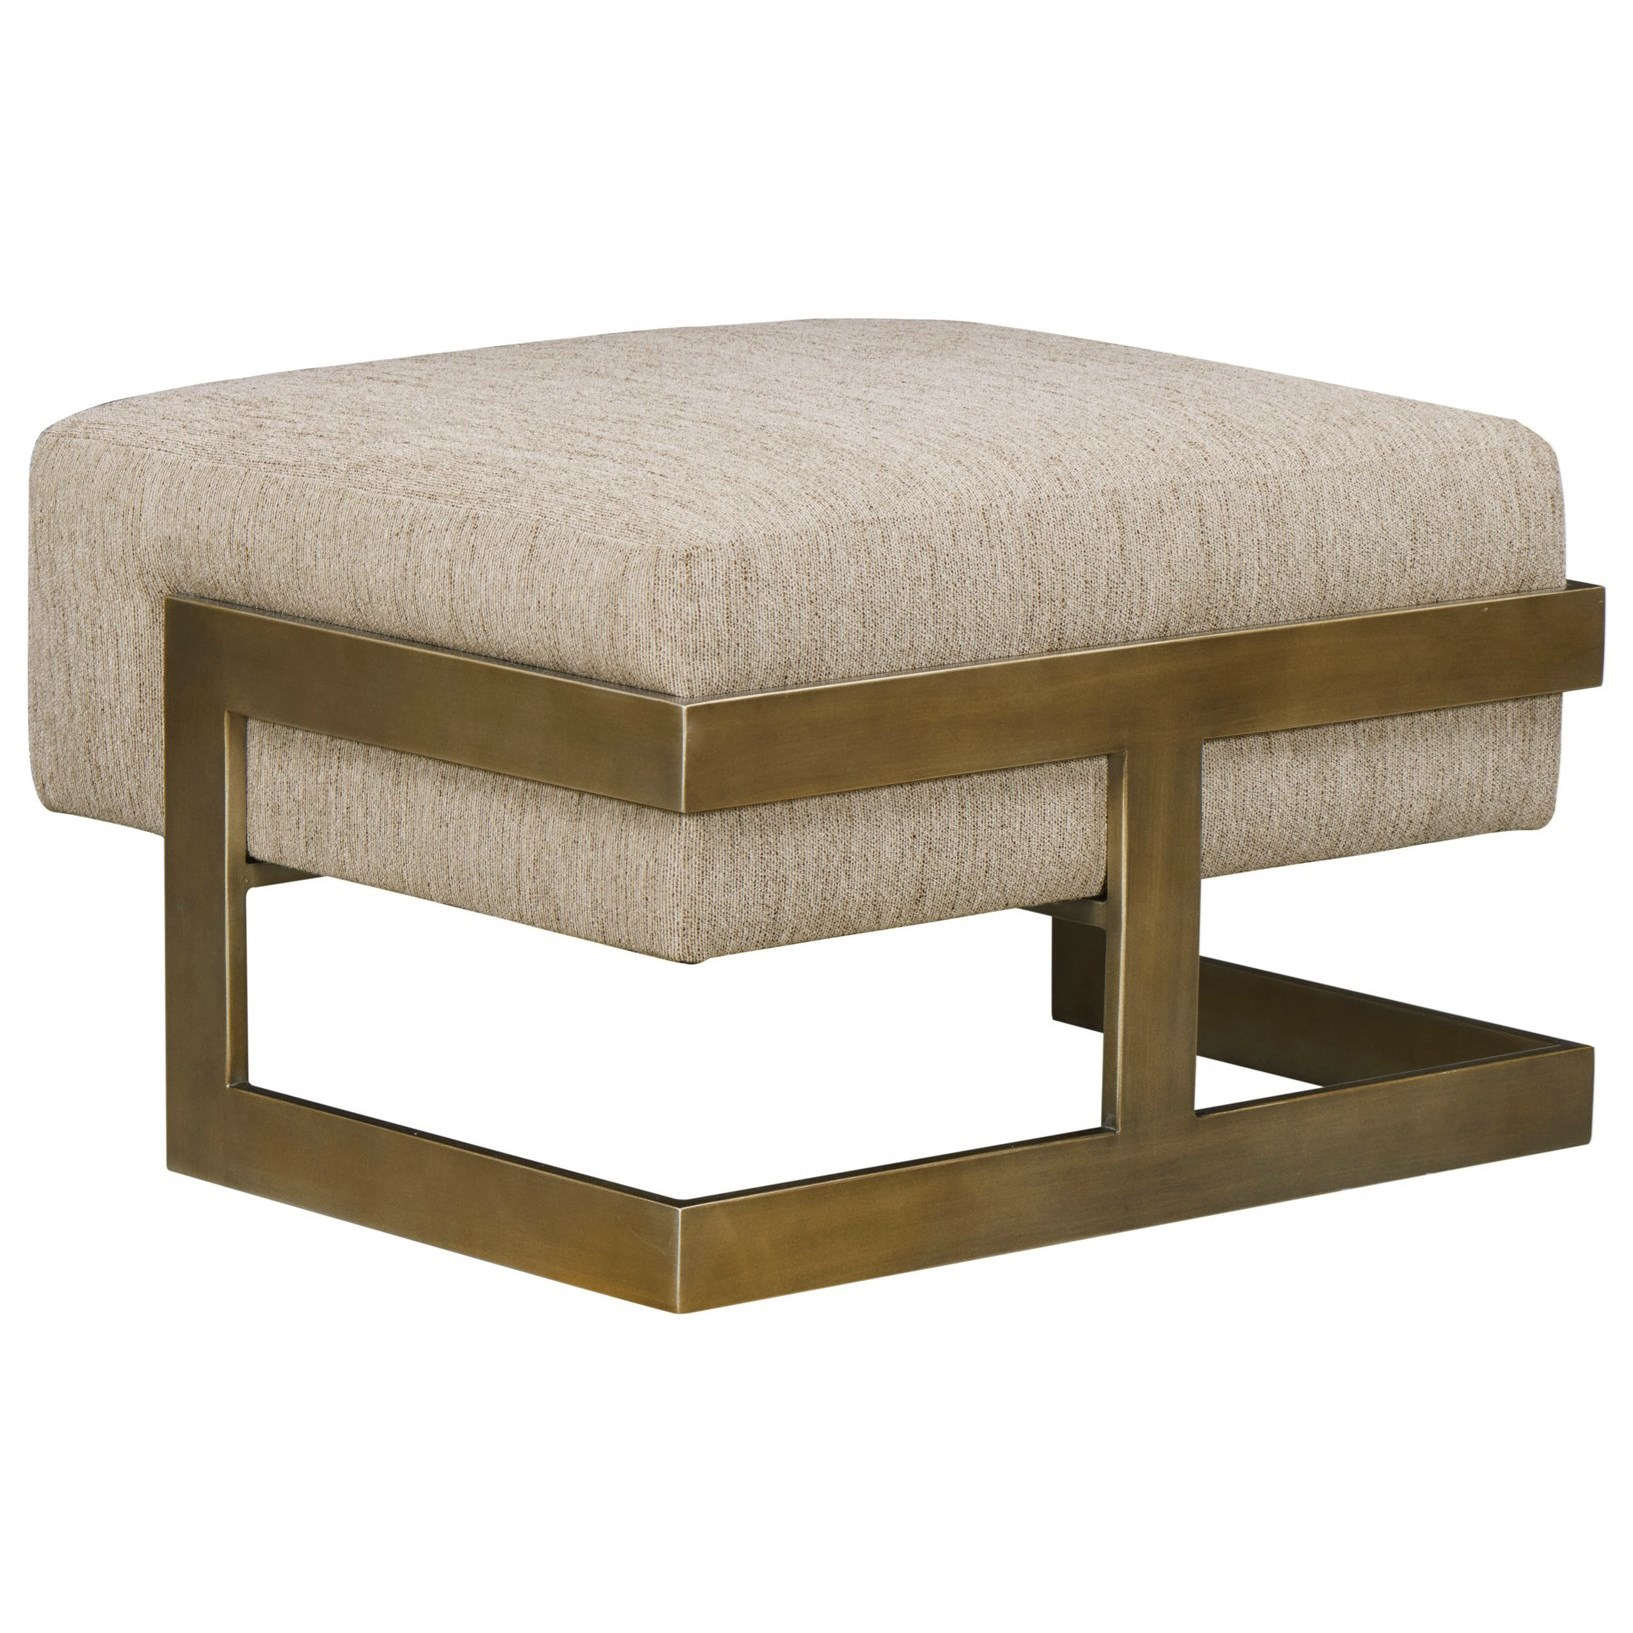 WoodWright Upholstery Ottoman by A.R.T. Furniture Inc at Dream Home Interiors